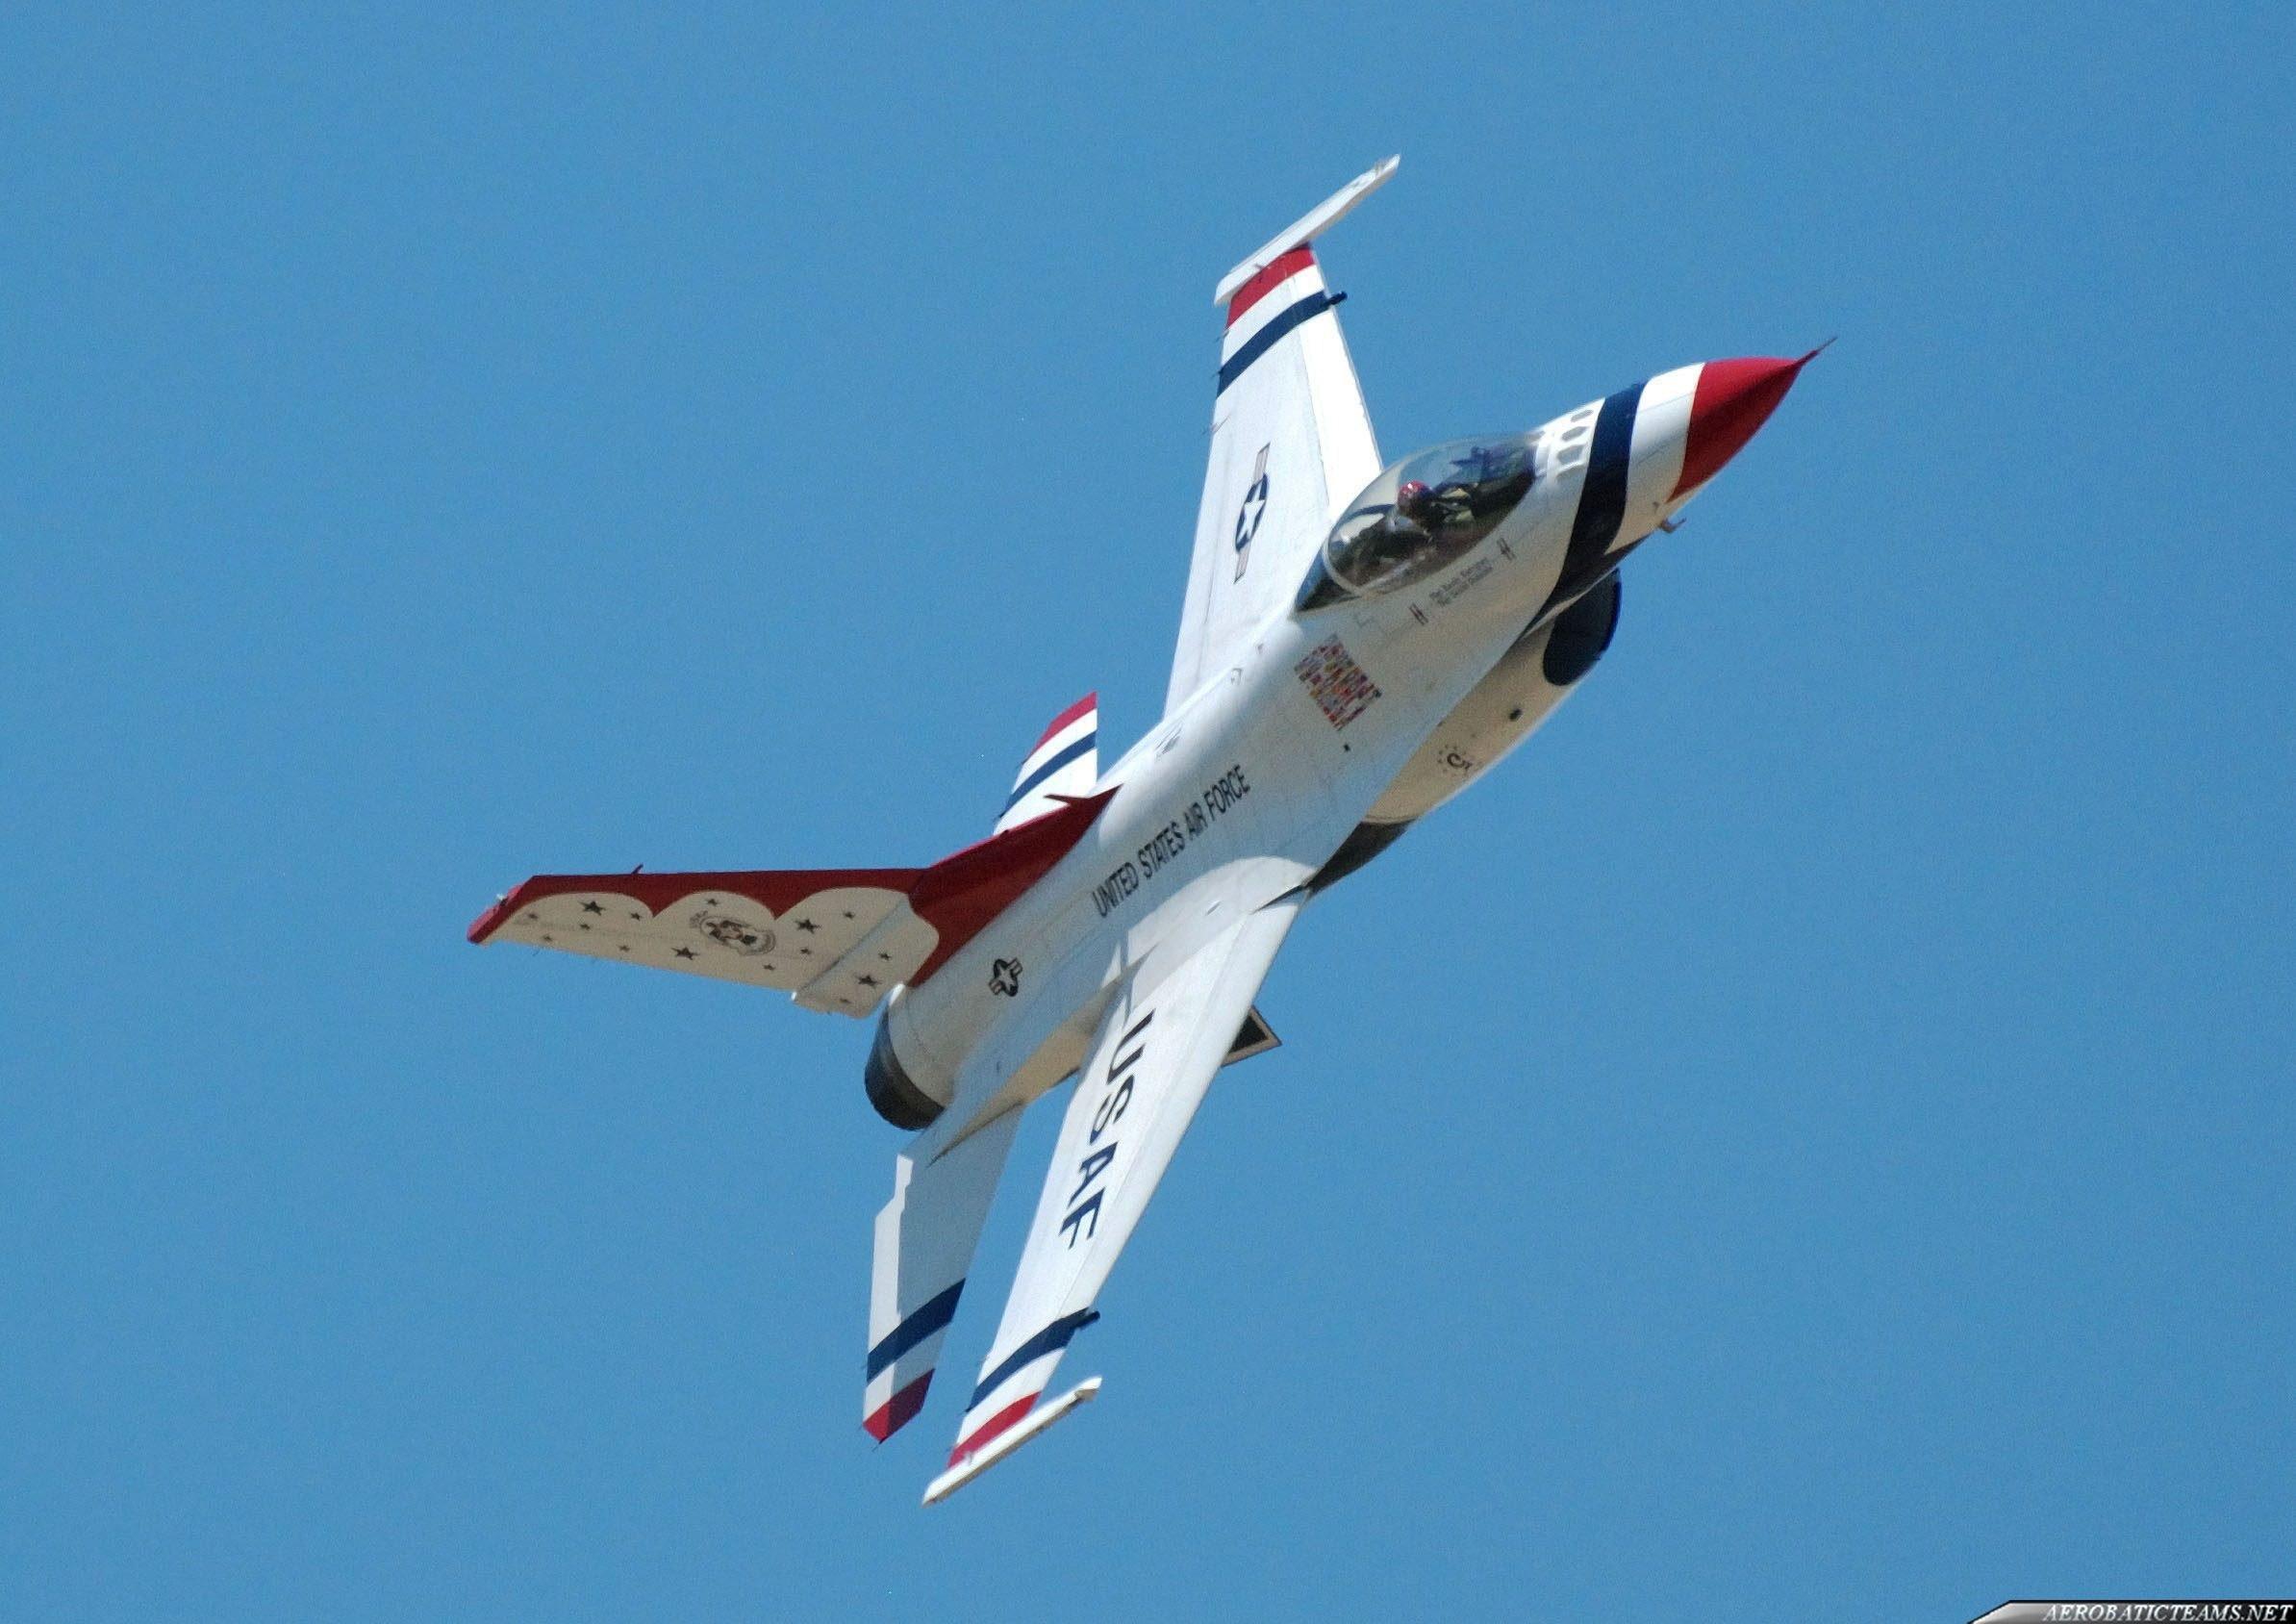 Thunderbirds recognition flights